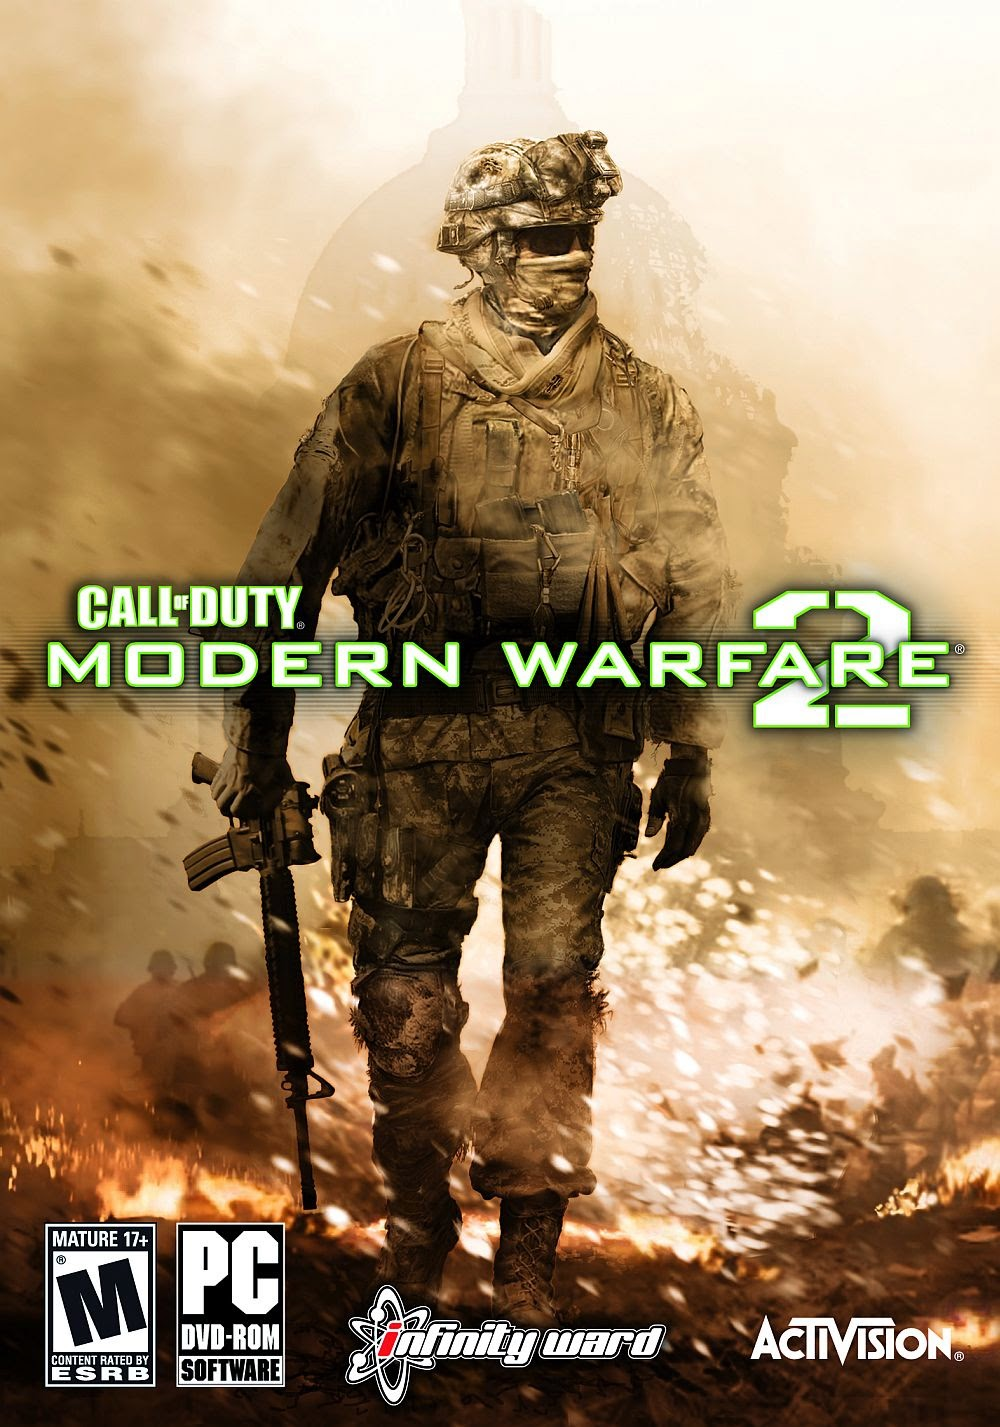 Download Call of Duty Modern Warfare 2 PC Game Free